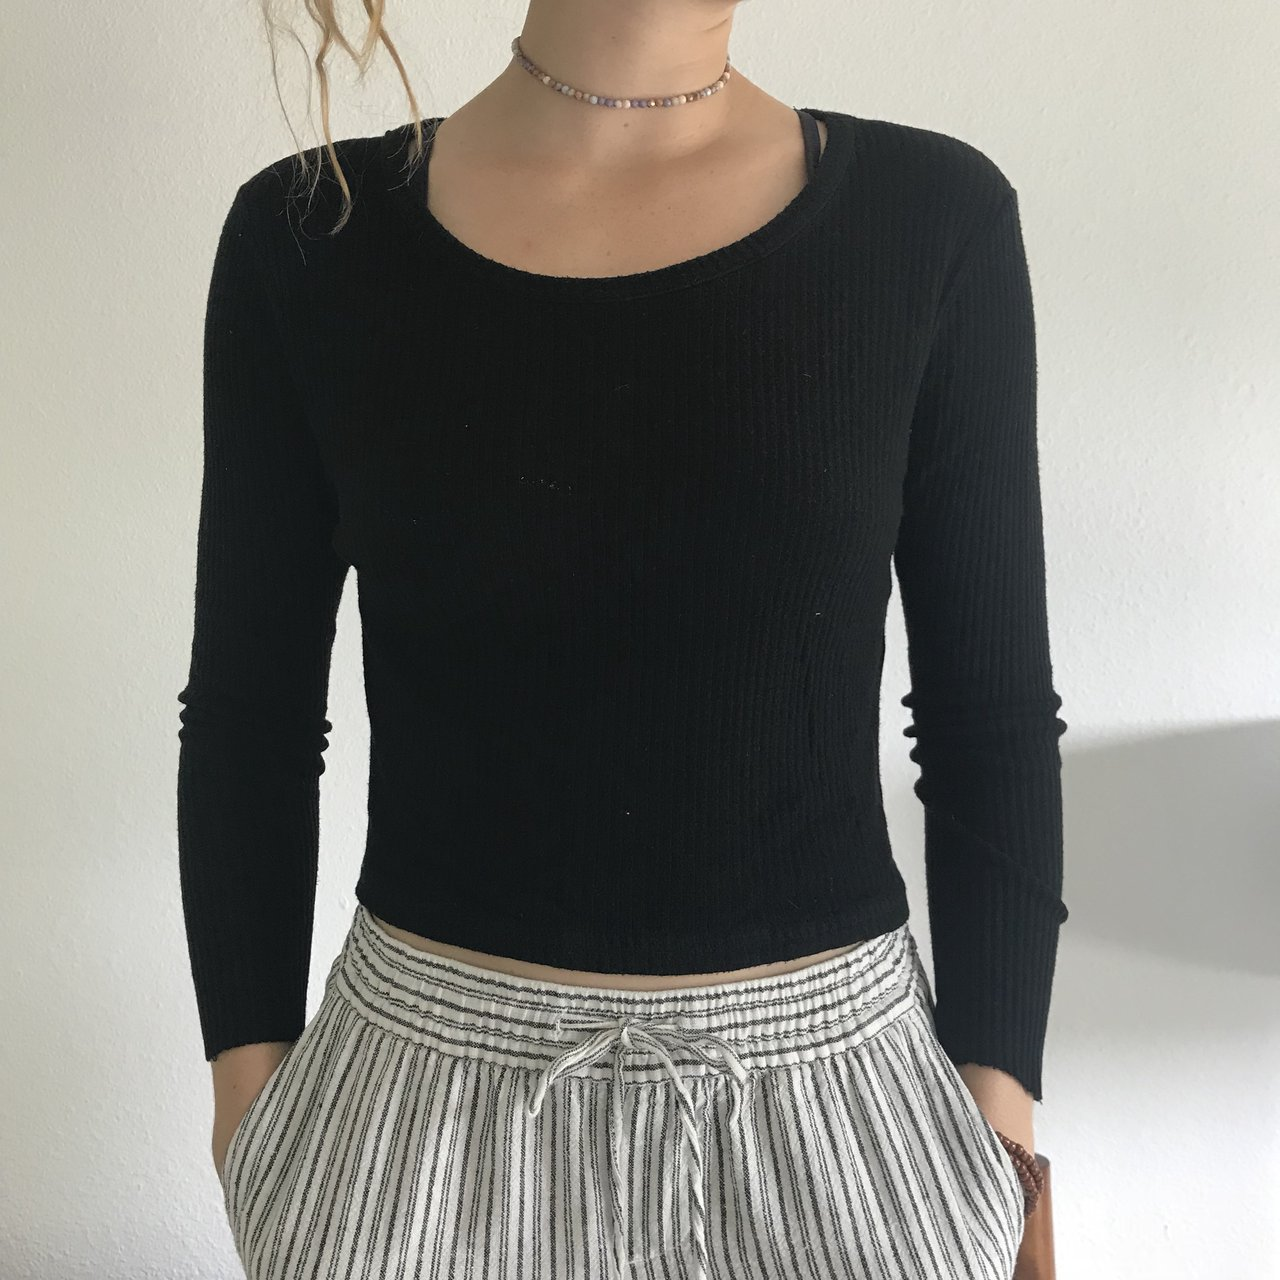 8d7891771217b black ribbed brandy melville crop top sweater not itchy at a - Depop